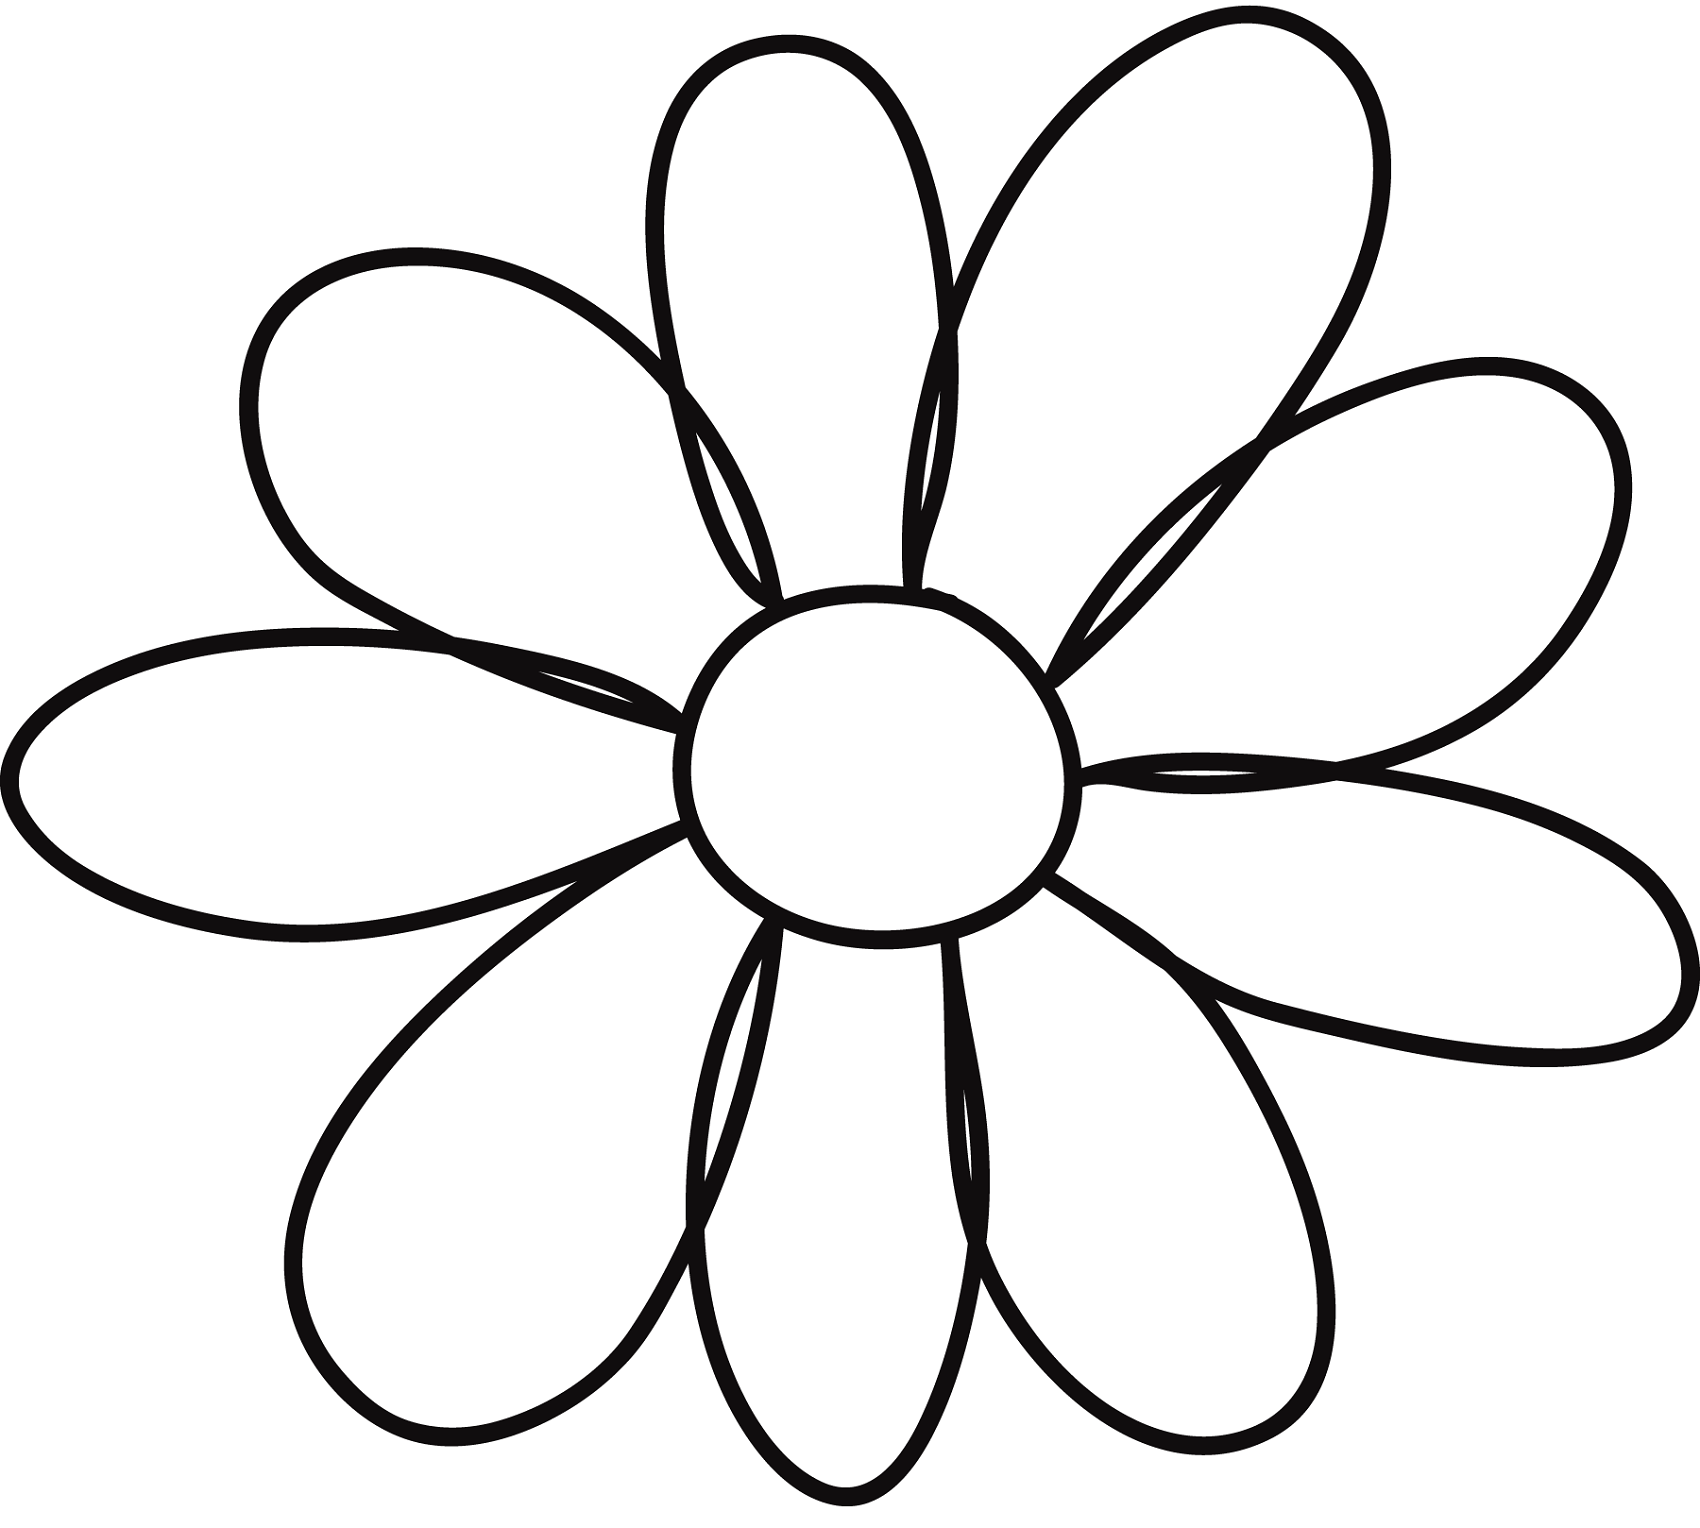 flowers outlines for colouring flower template for children39s activities activity shelter for outlines colouring flowers